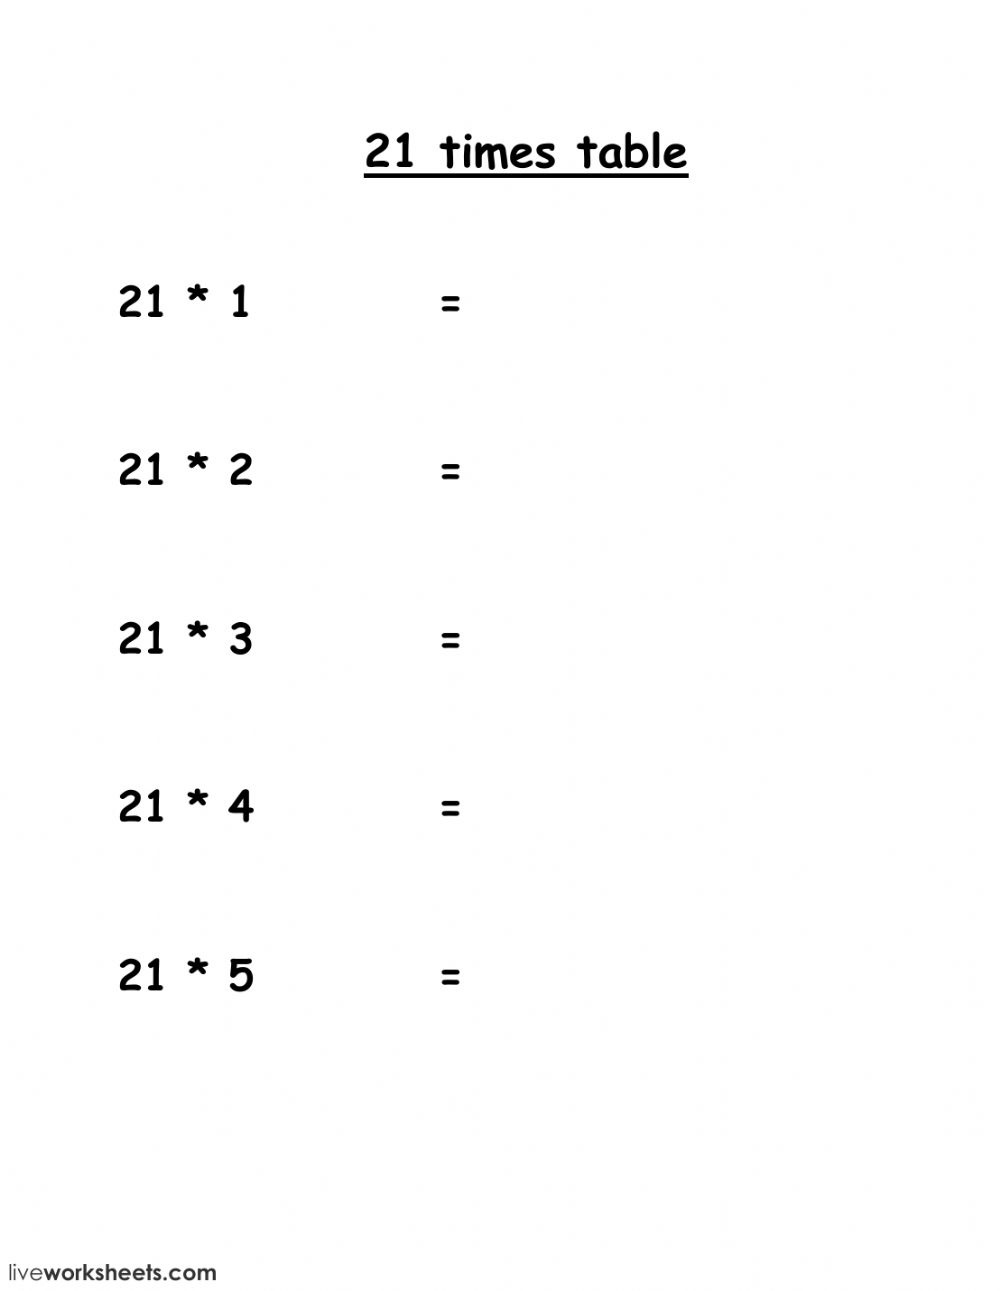 21 Times Table Interactive Worksheet